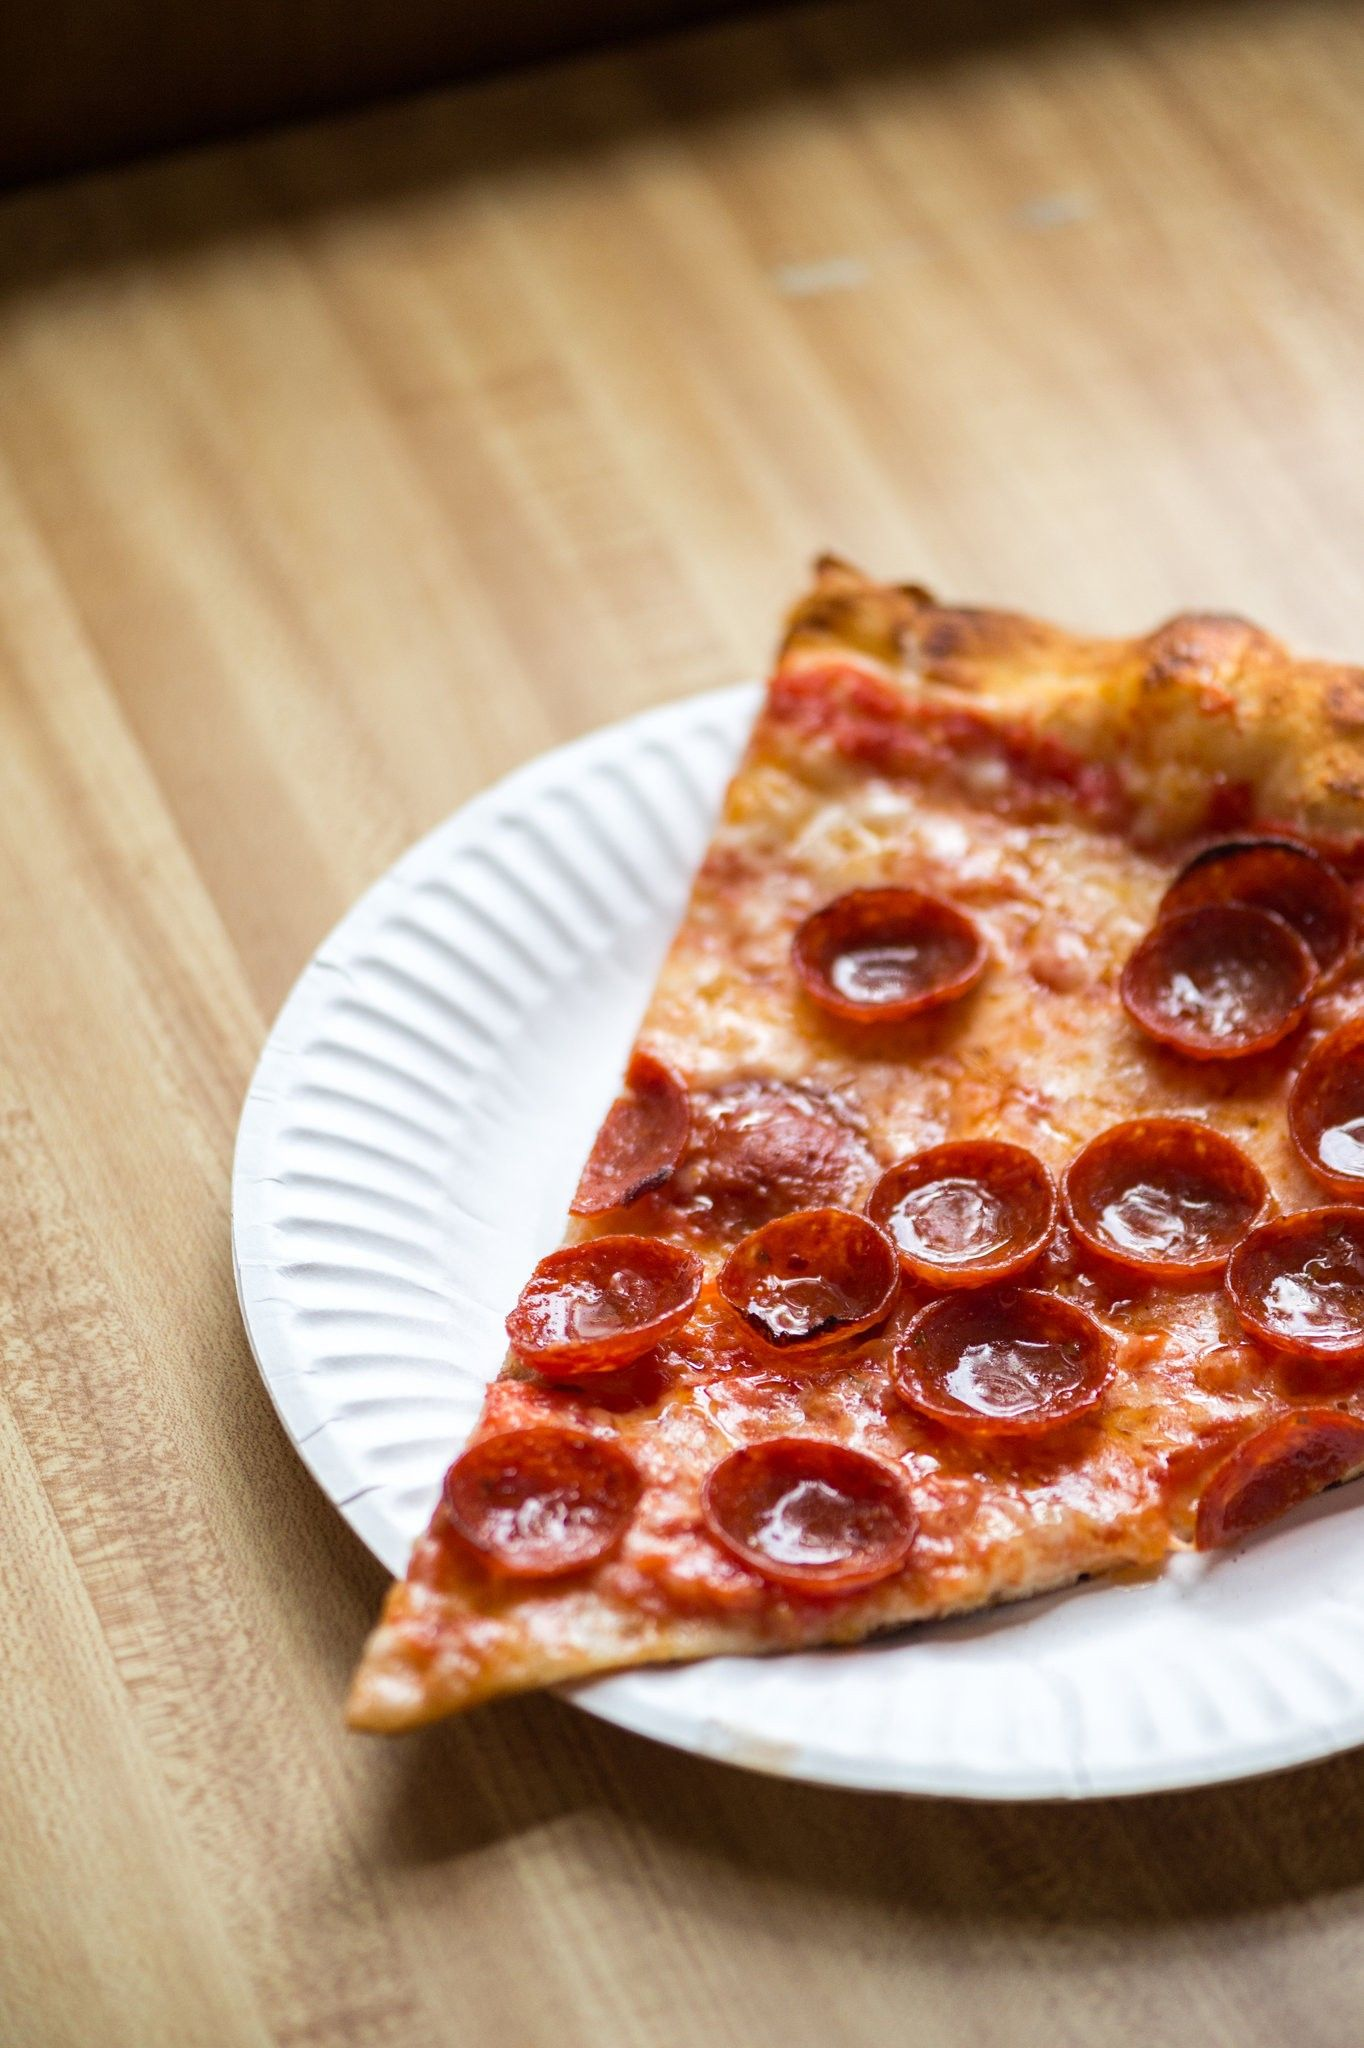 Best Pizza In Nyc Try These 10 Slices The New York